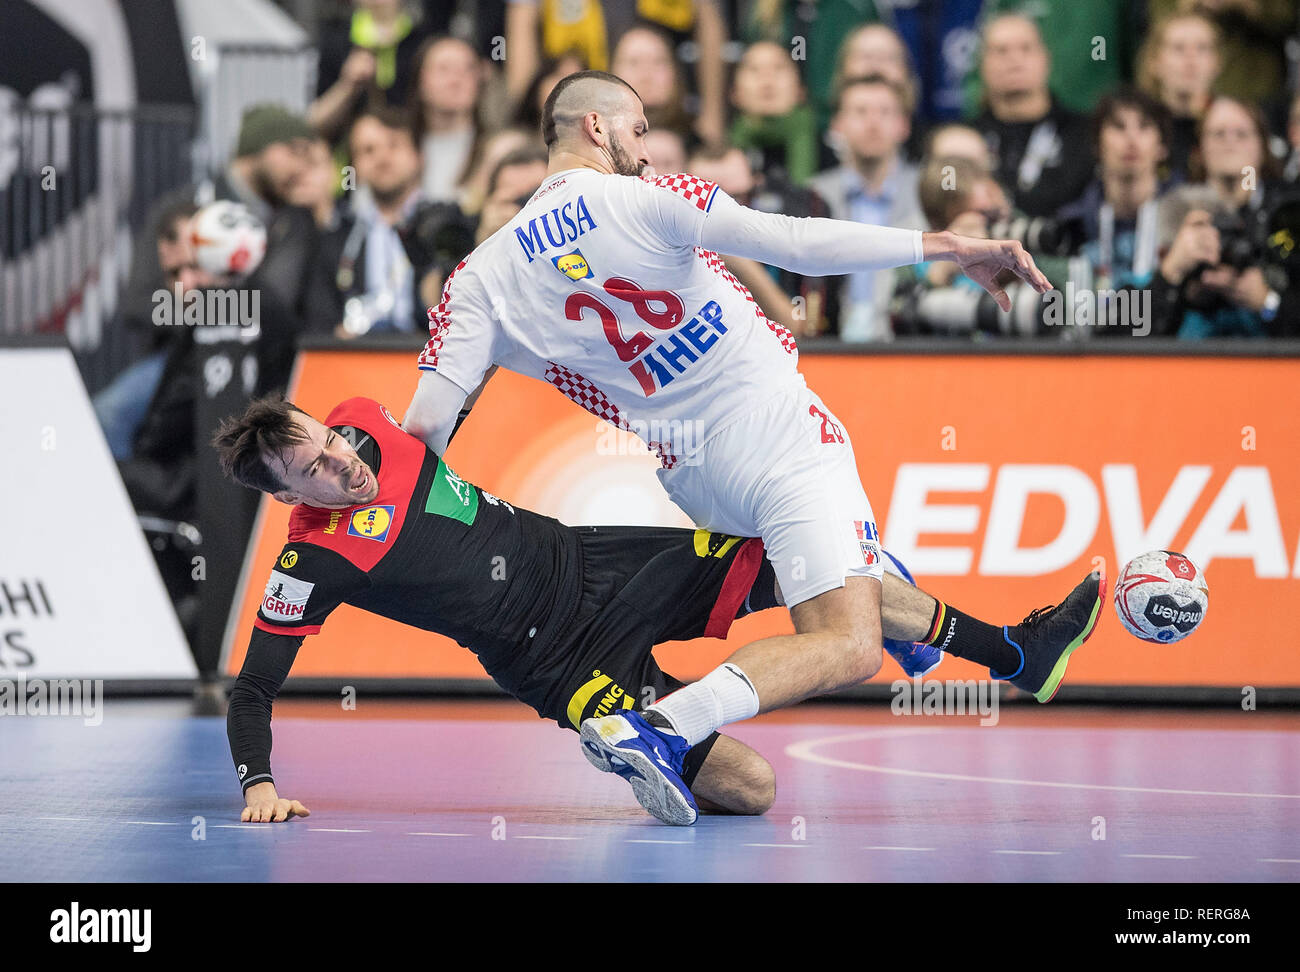 Patrick GROETZKI l. (GER) wrestling versus Zeljko MUSA (CRO), Aktion, duels, Main Round Group I, Croatia (CRO) - Germany (GER), on 21.01.2019 in Koeln / Germany. Handball World Cup 2019, from 10.01. - 27.01.2019 in Germany / Denmark. | usage worldwide Stock Photo